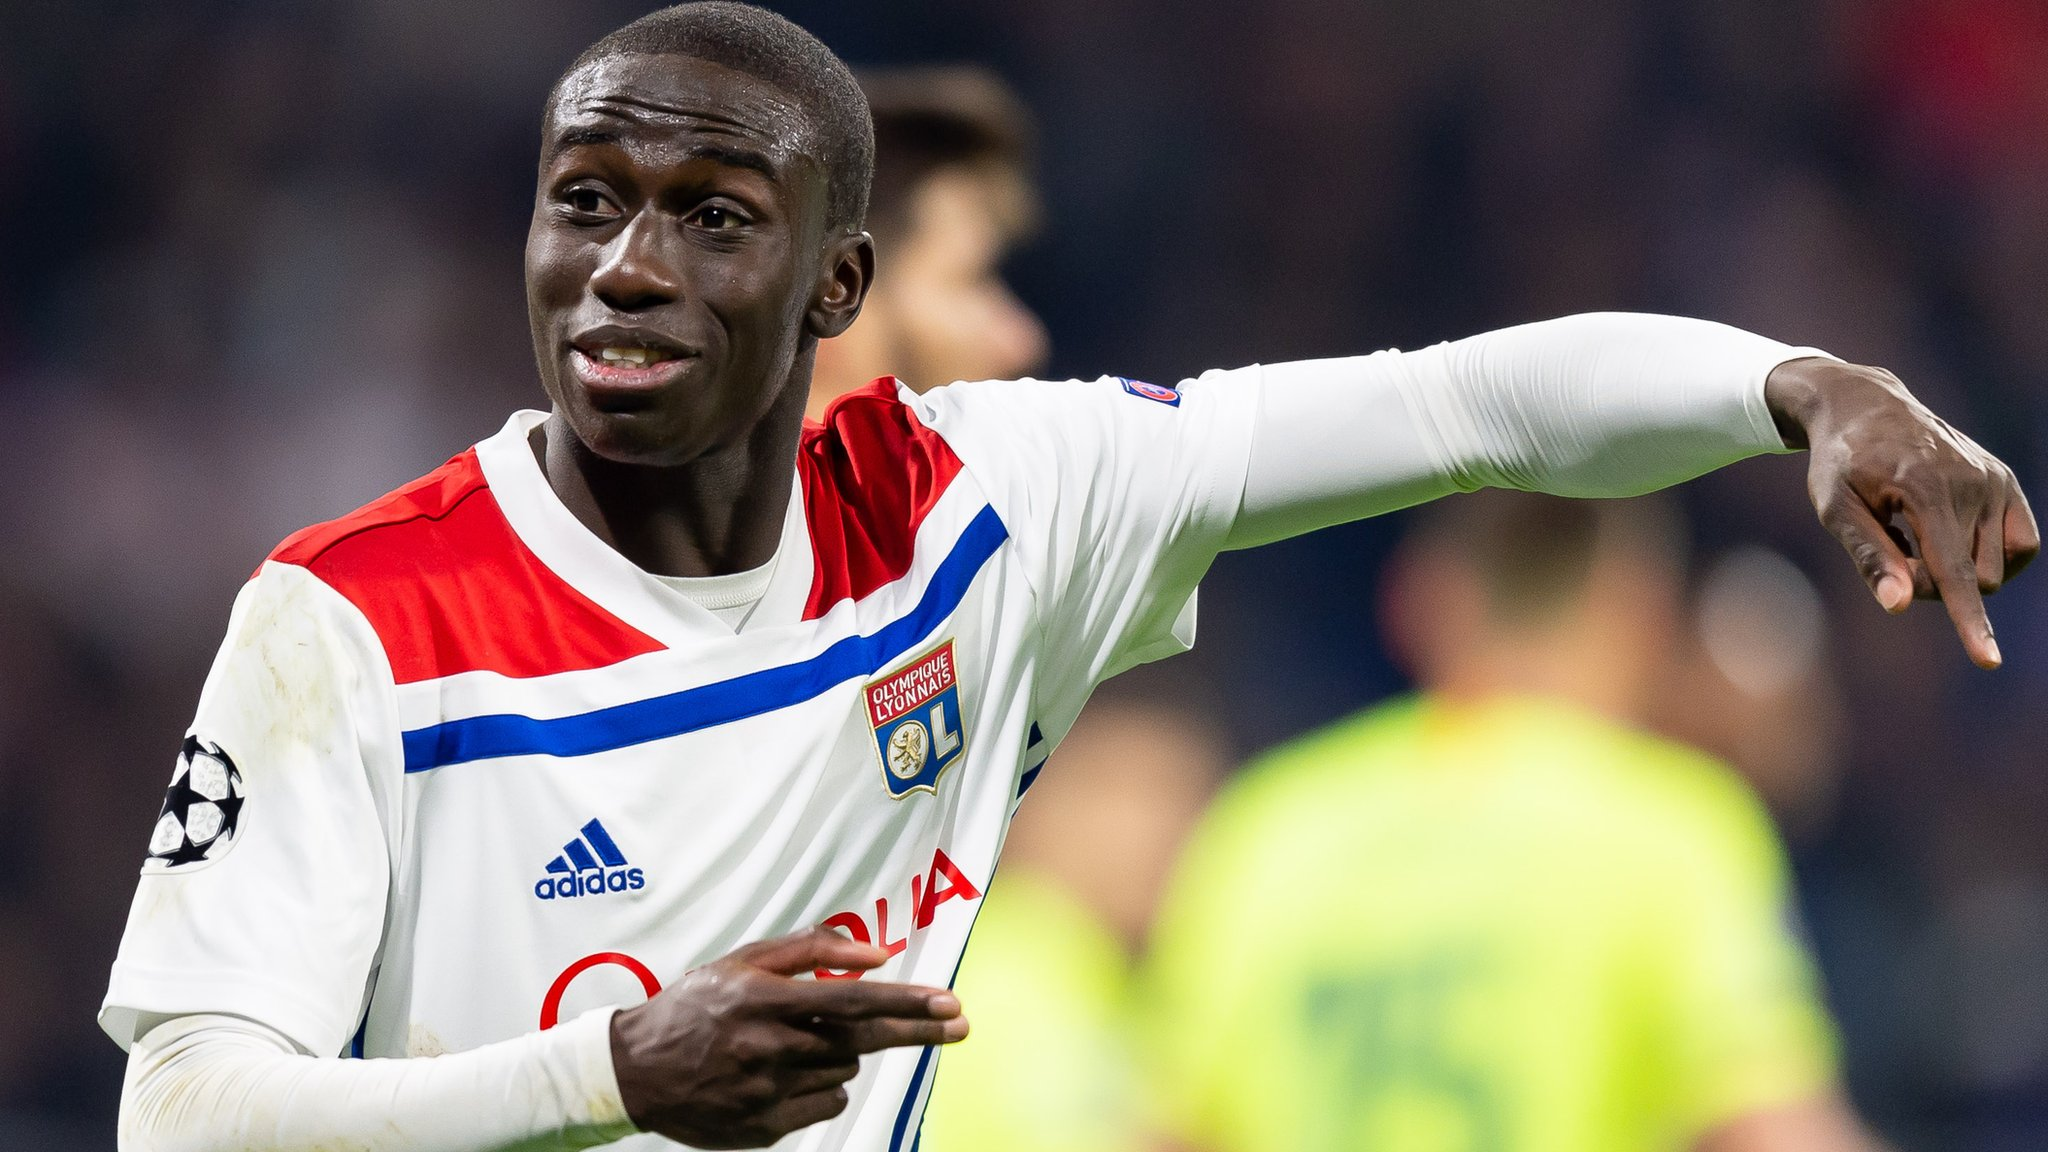 Real Madrid sign Lyon's Mendy in £47m deal